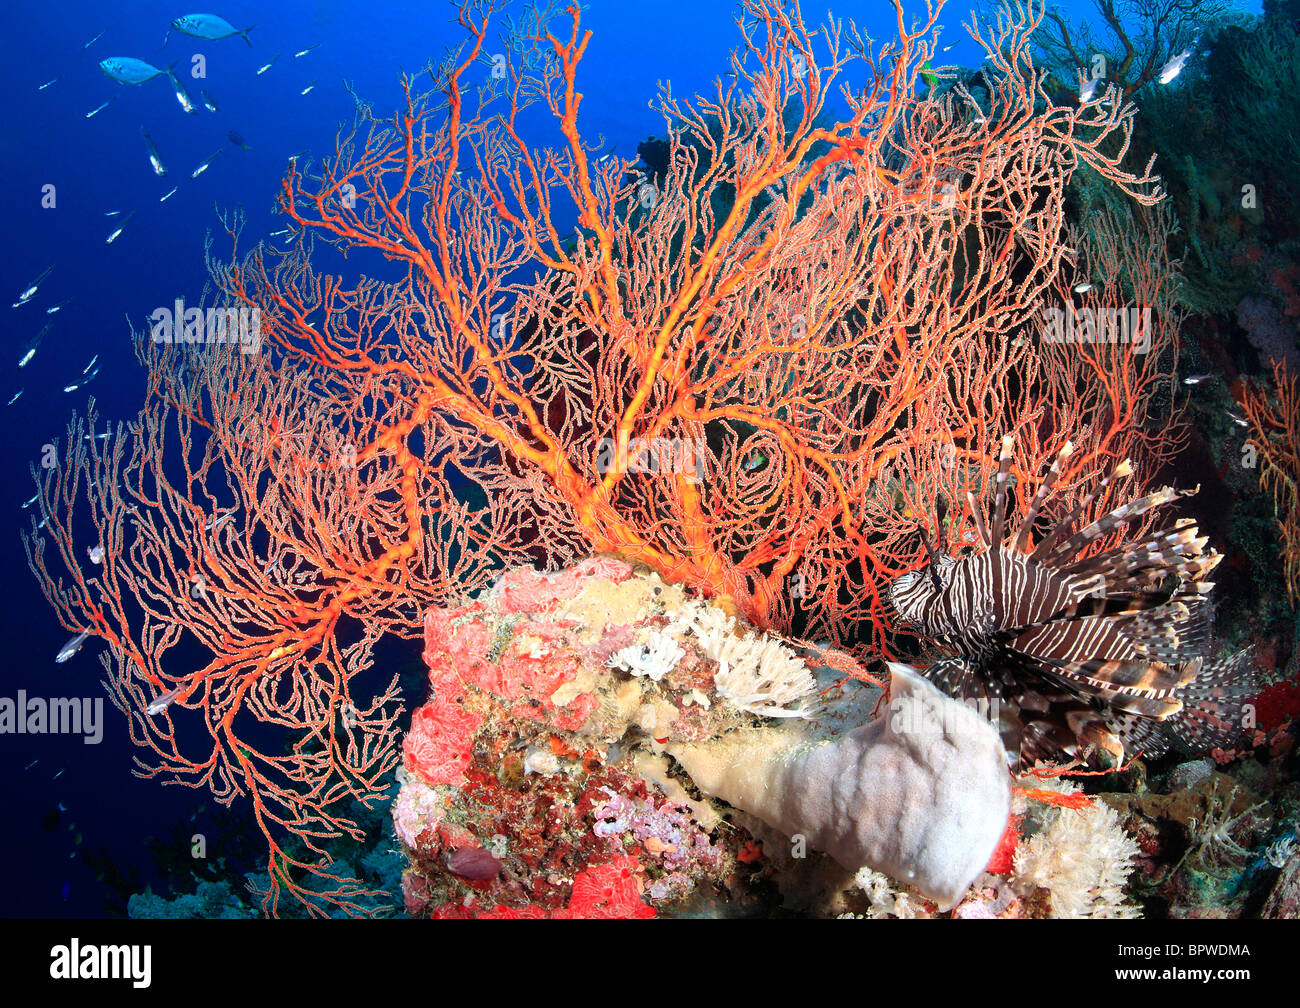 a  colorful reef scene with red sea fans, tropical fish and a lionfish, with a blue water background, - Stock Image